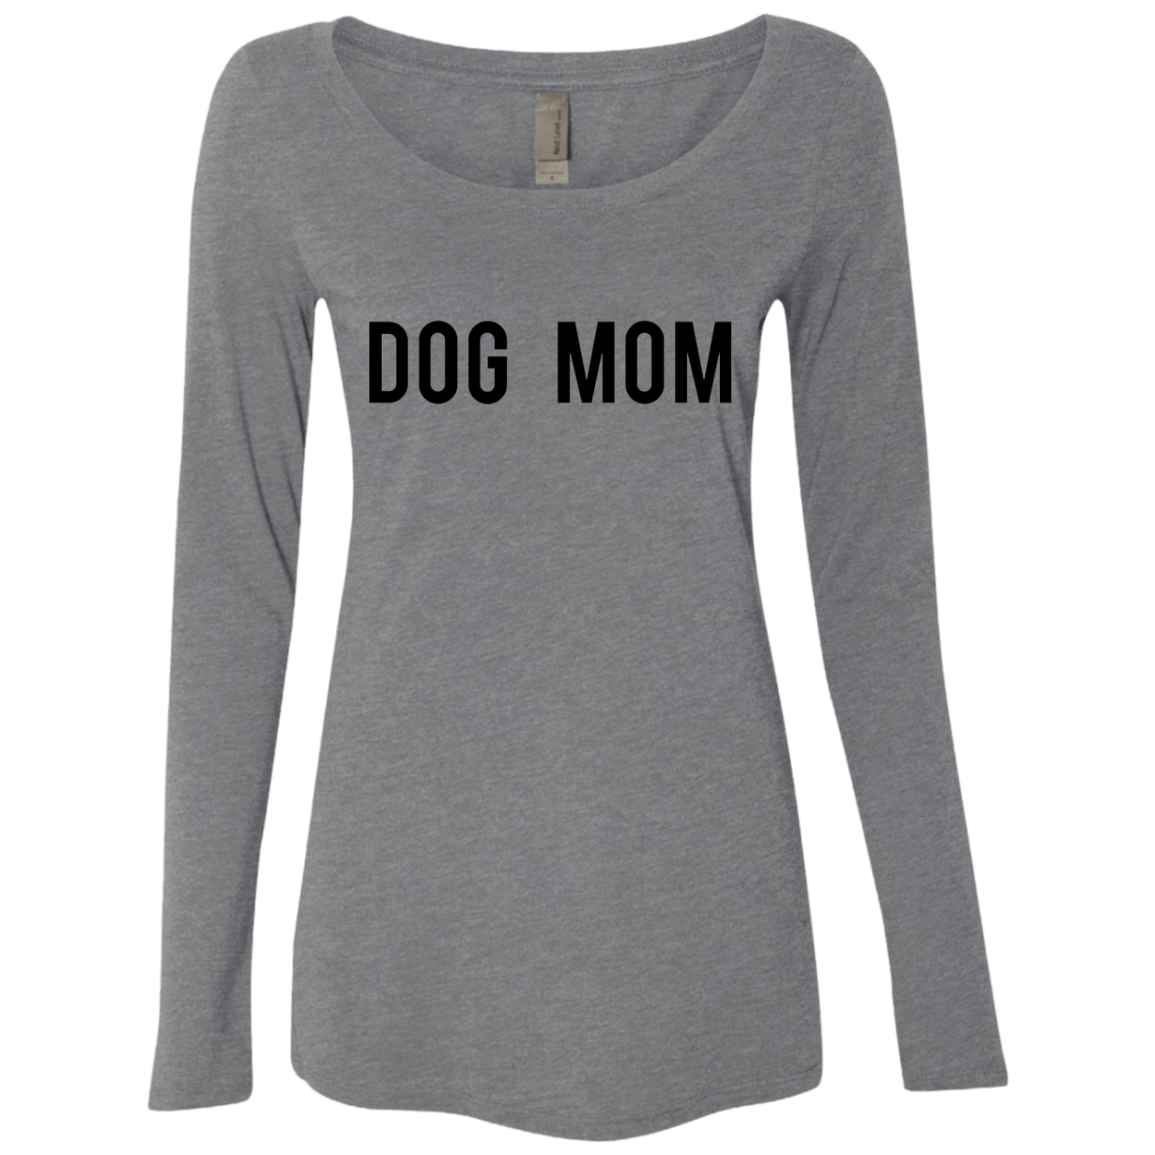 Dog Mom Women's Long Sleeve Tee - Trendy Tees